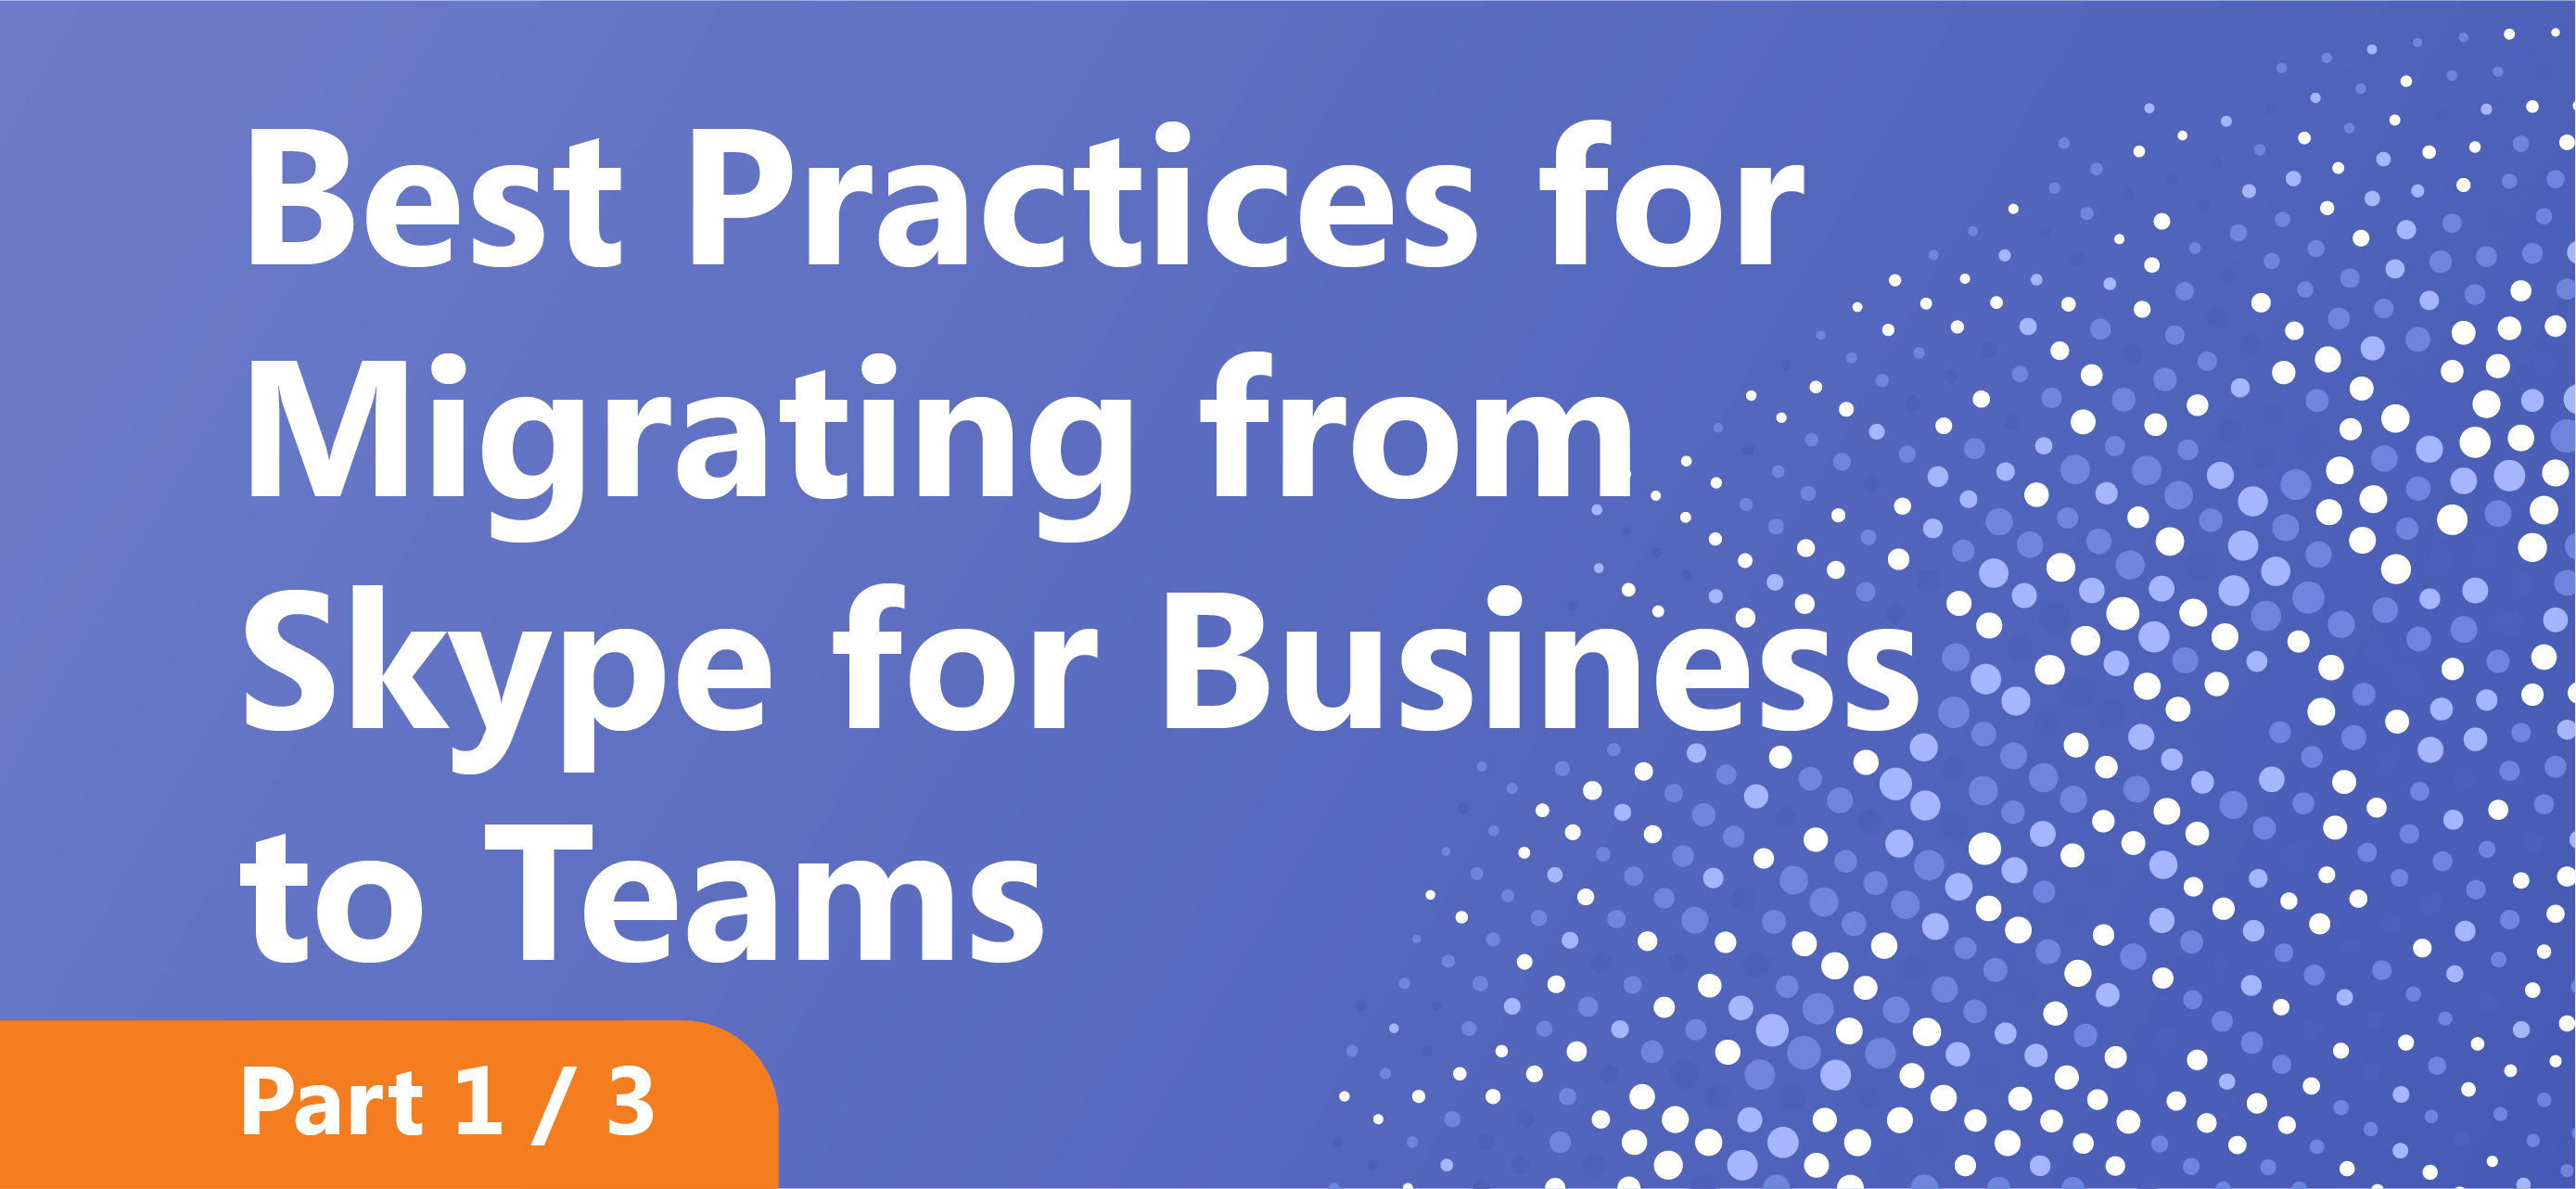 Best Practices for Migrating from Skype for Business to Teams Blog Part 1